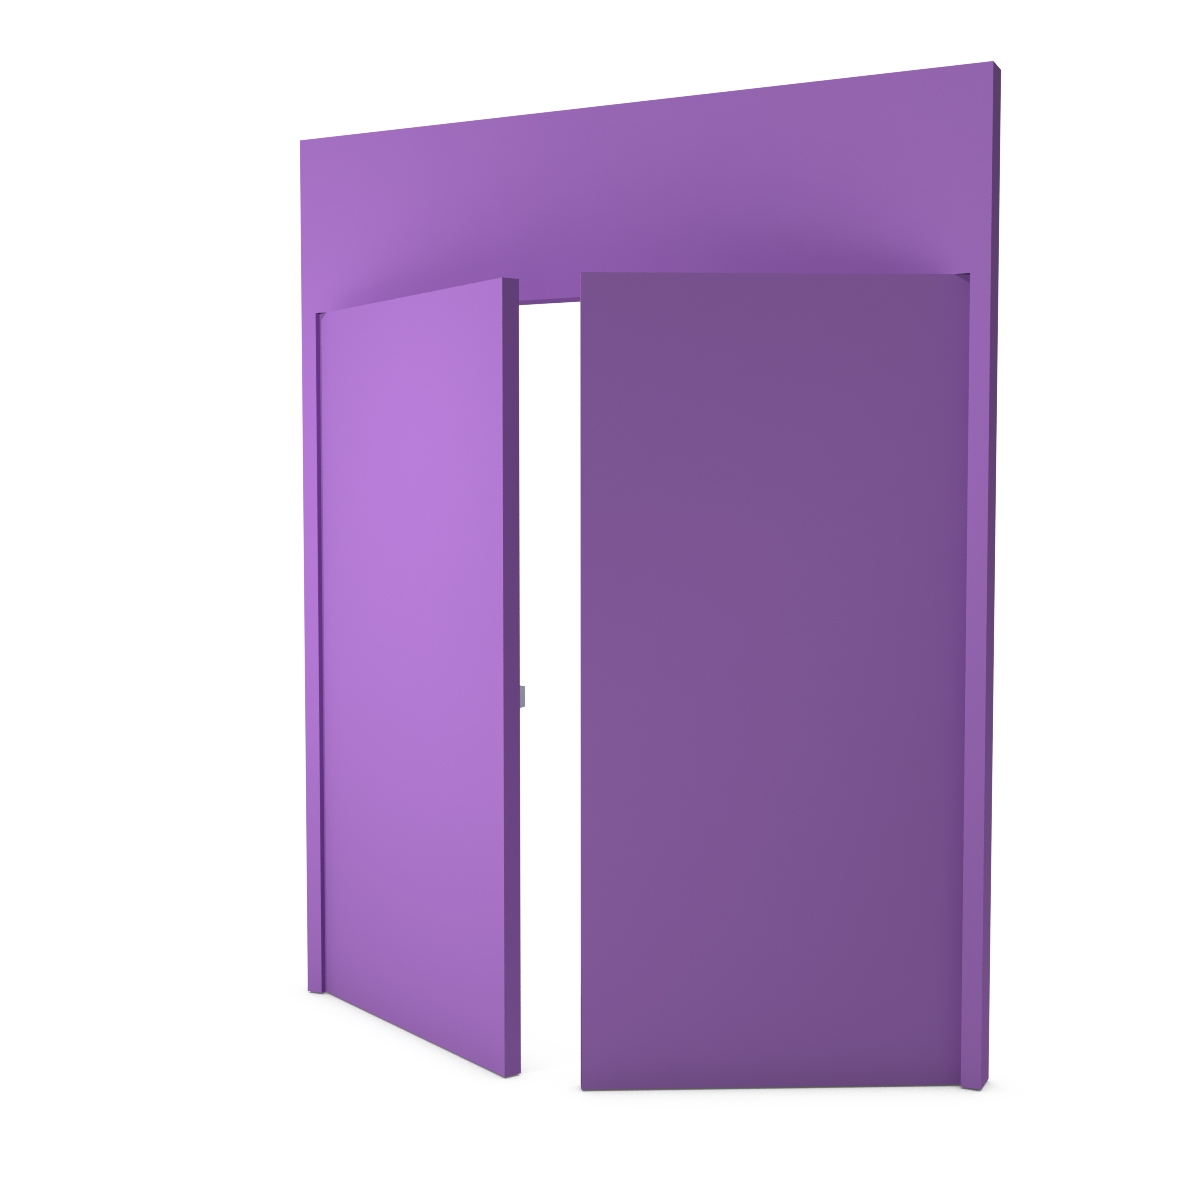 Double door covered in solid-color textile - Lilac